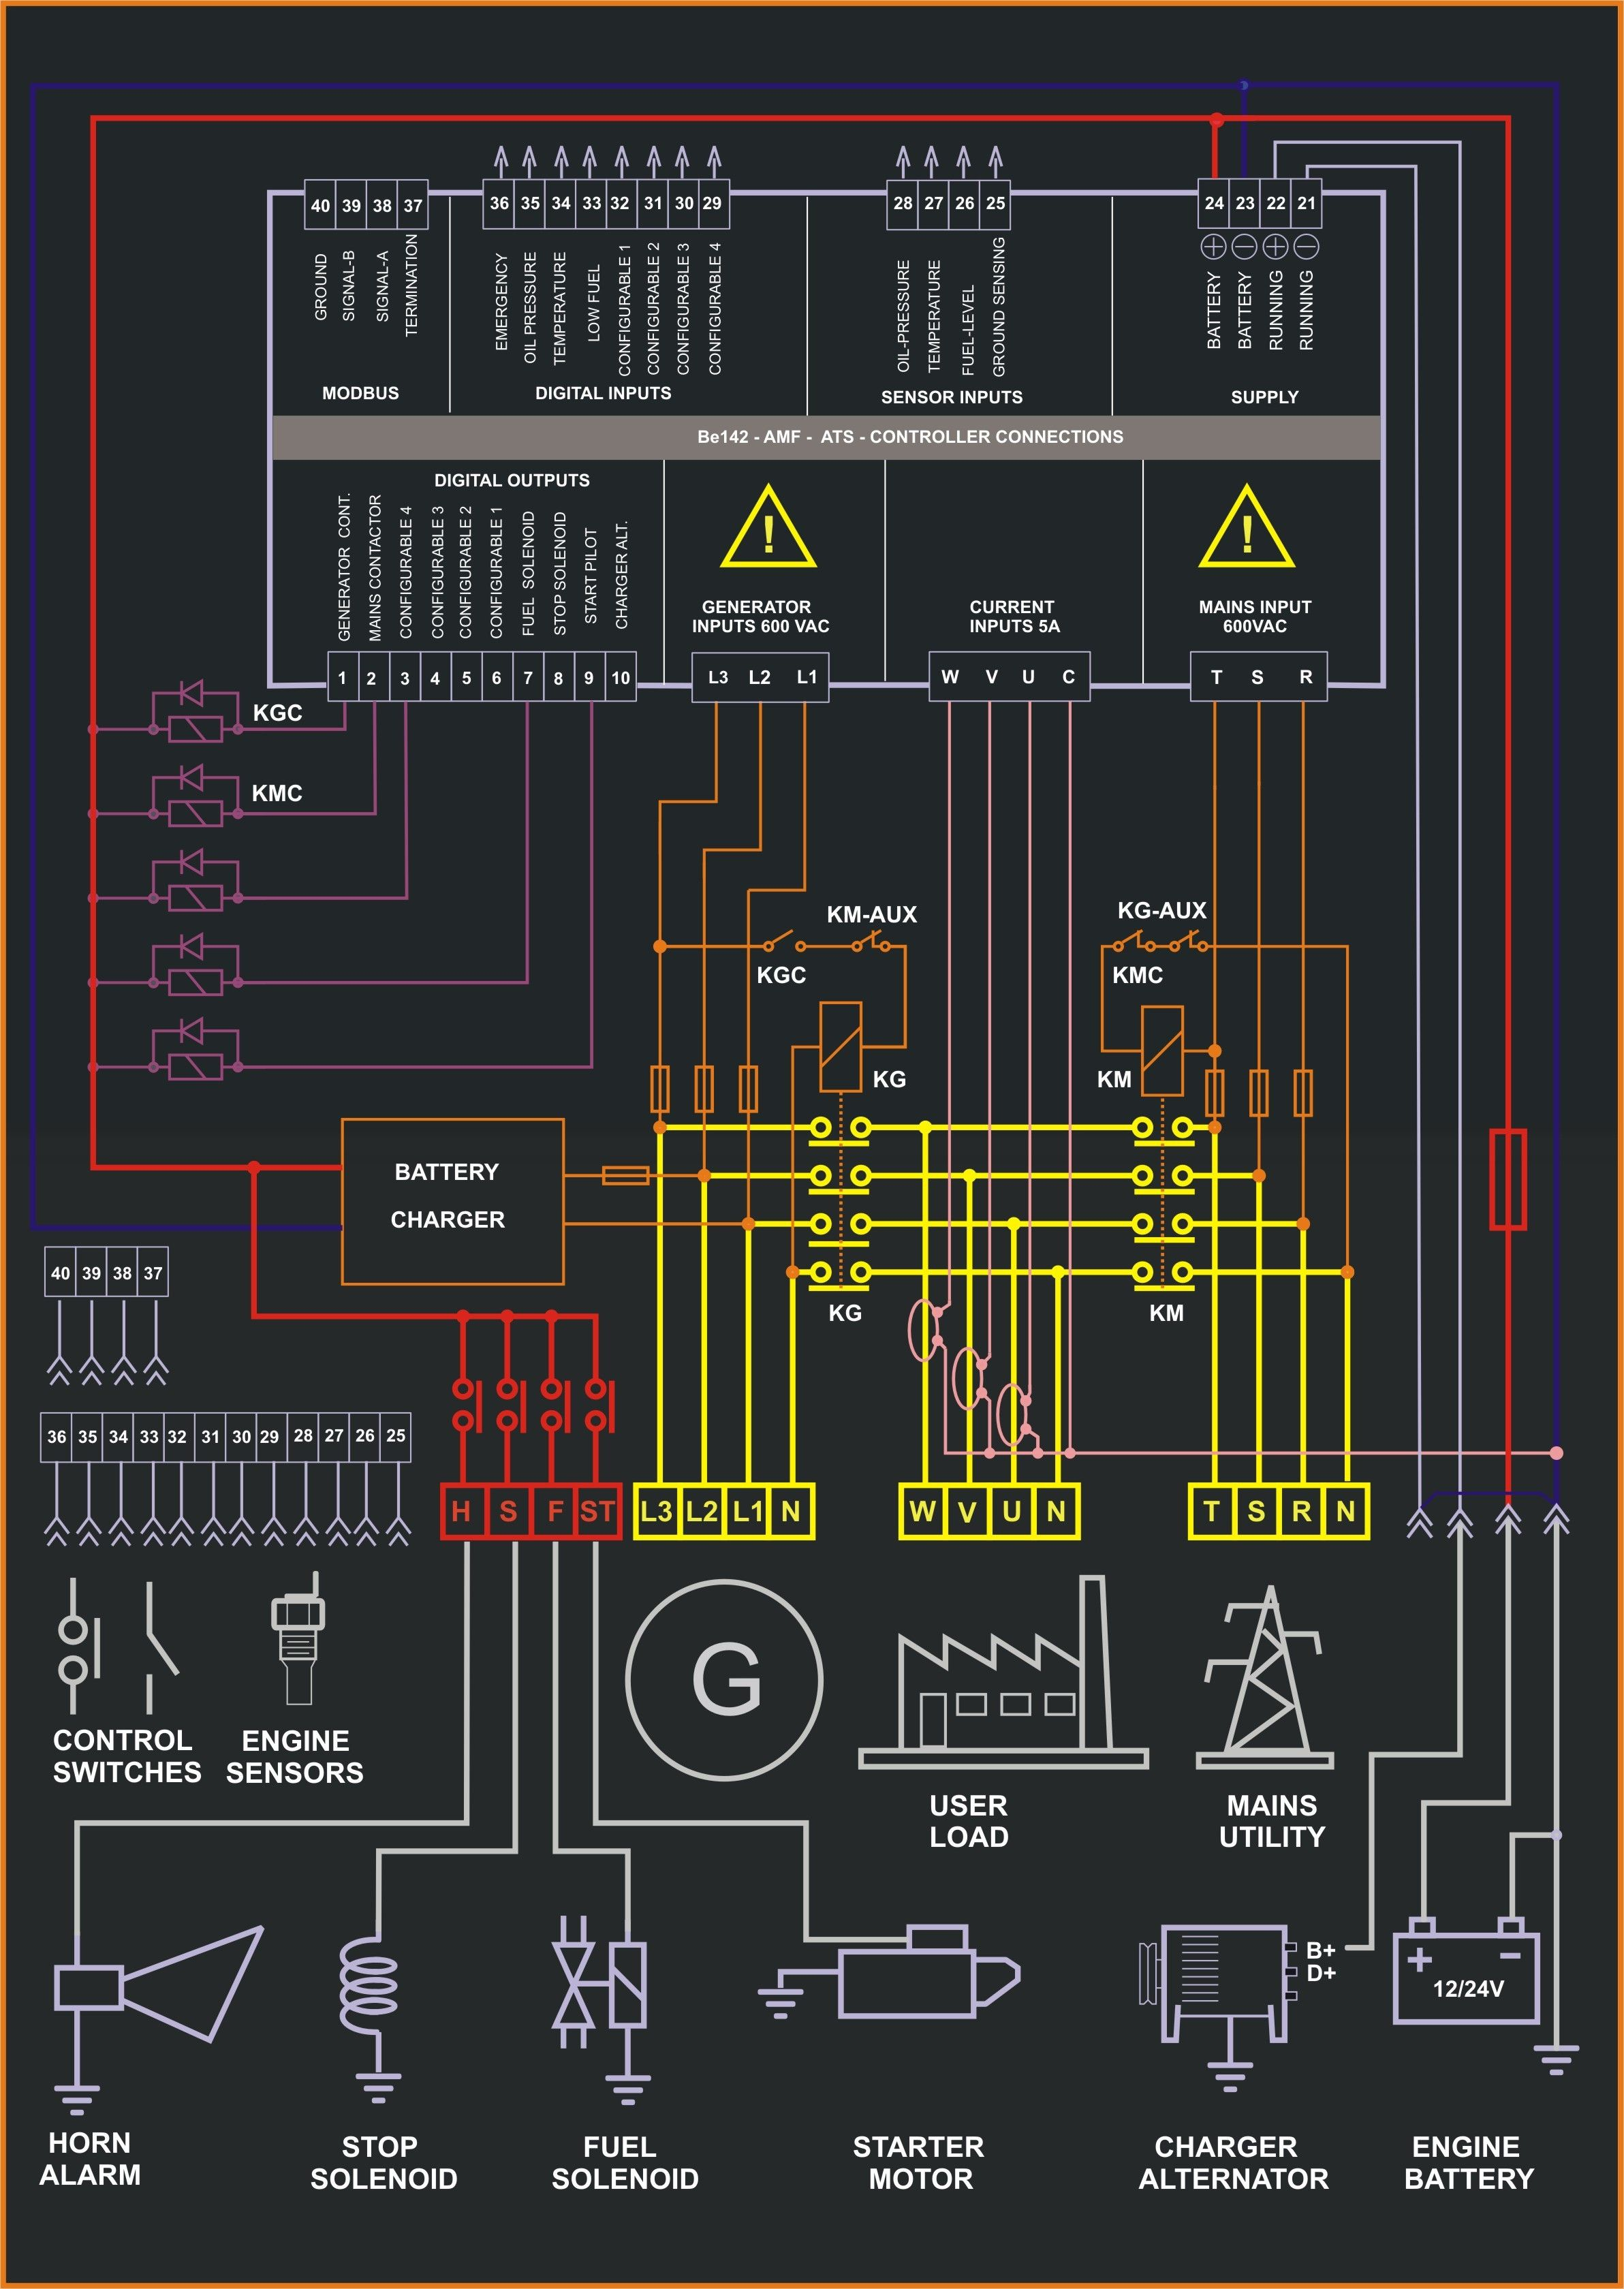 electrical panel board wiring diagram pdf fresh 41 awesome circuit breaker  theory pdf